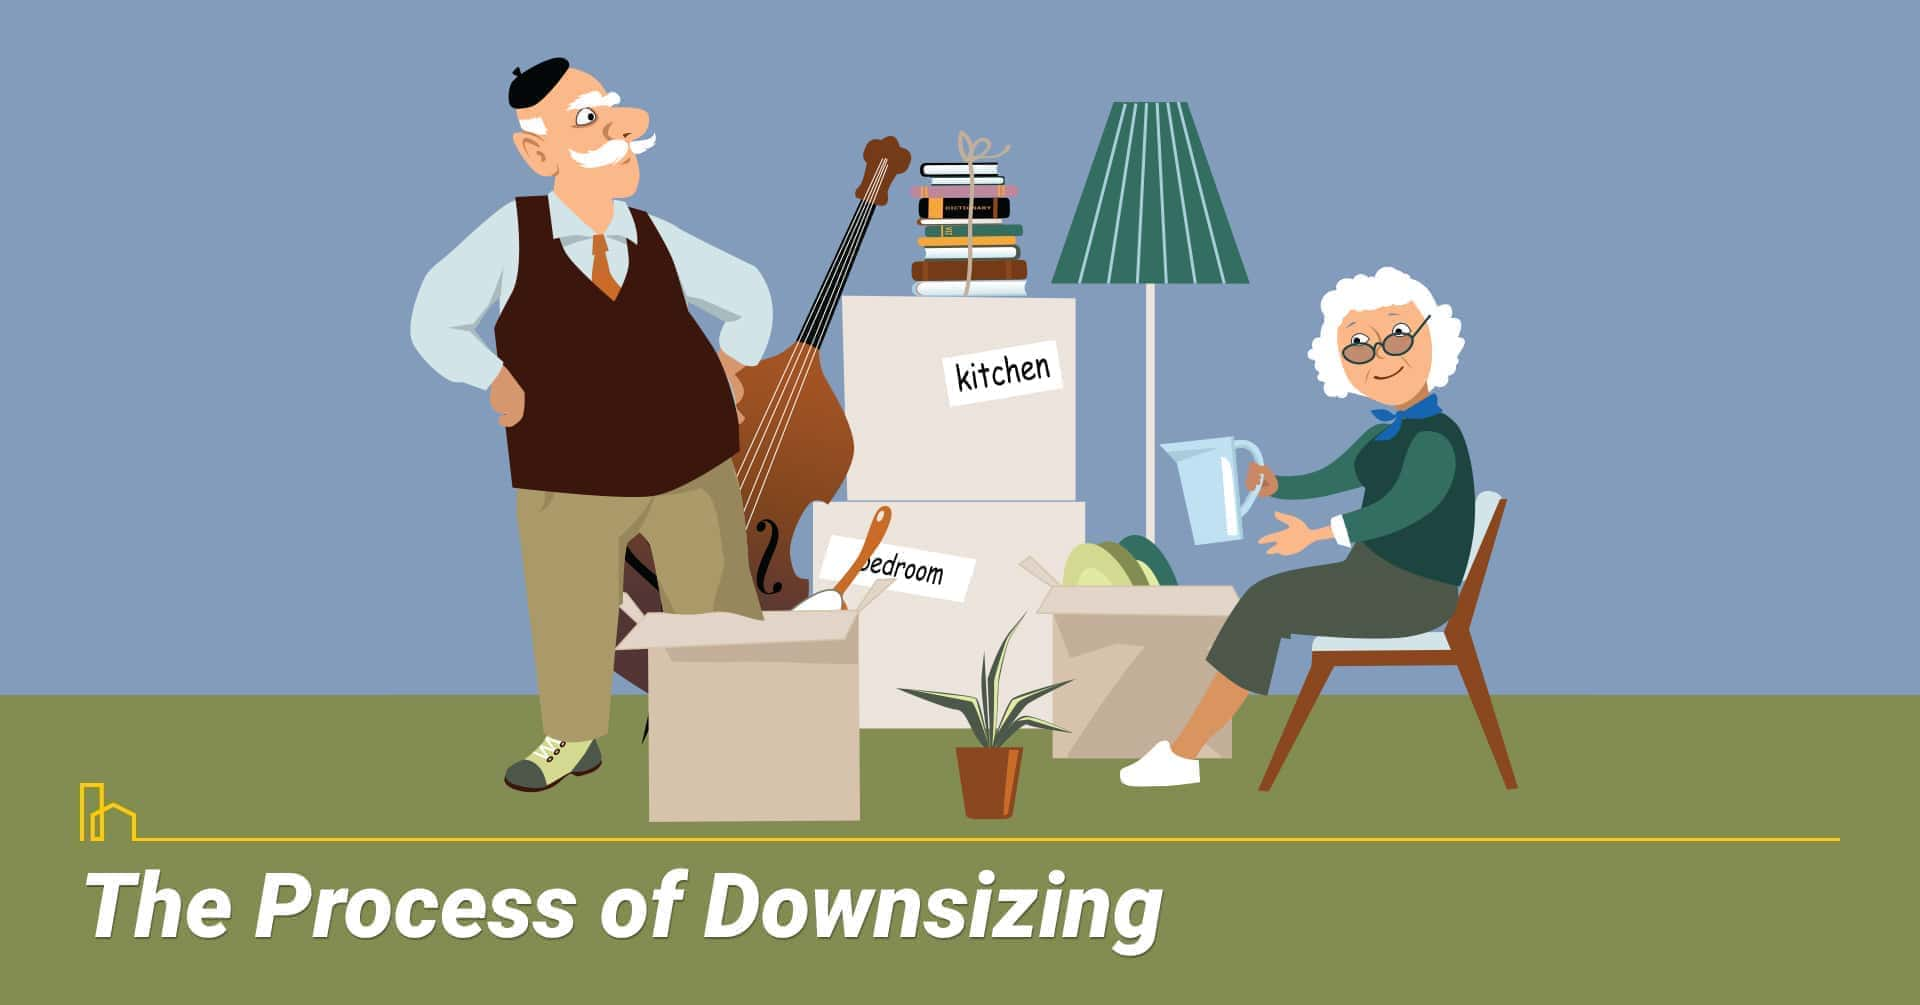 The Process of Downsizing, steps to downsizing